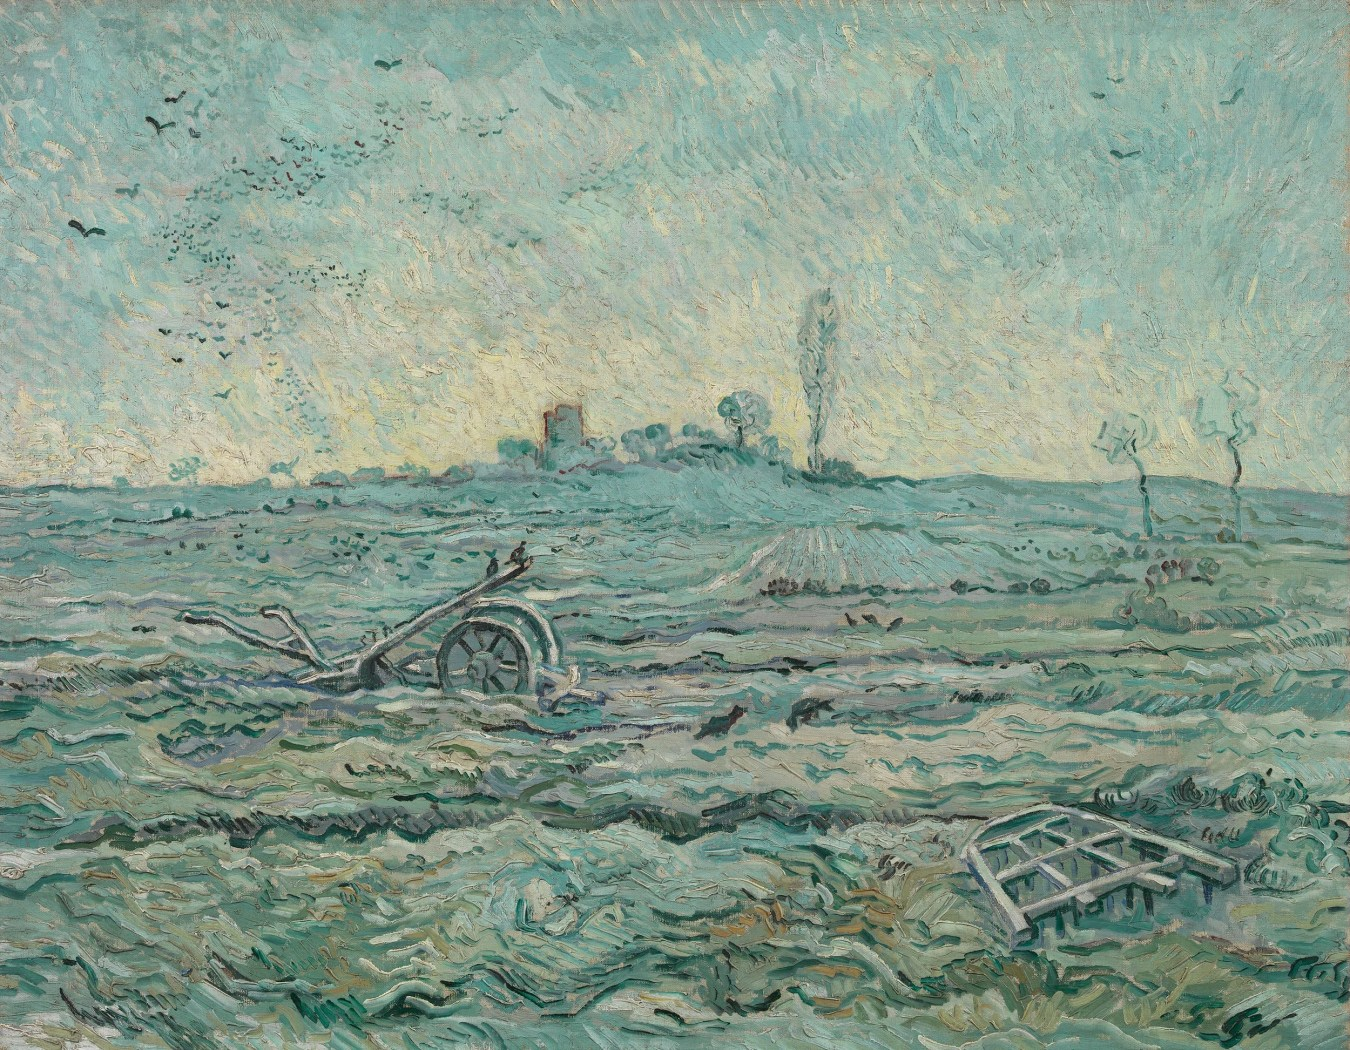 Vincent van Gogh, Snow-Covered Field with a Harrow (after Millet),